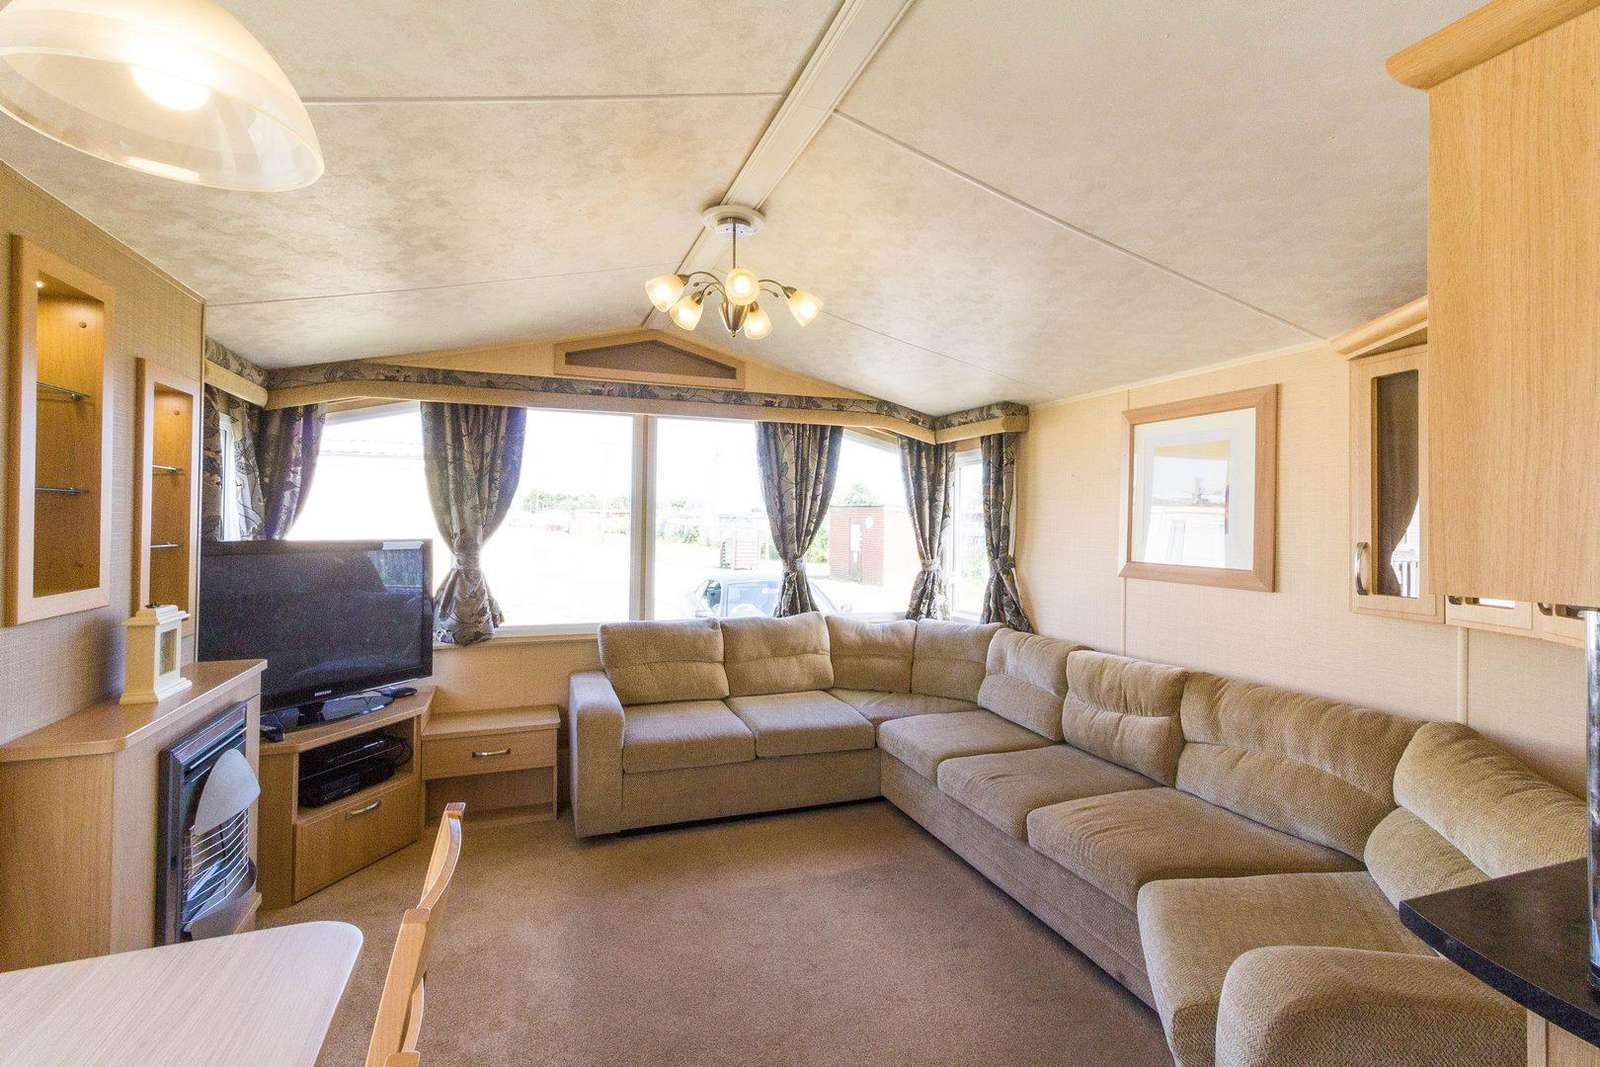 You can find and TV and Xbox in this great accommodation!